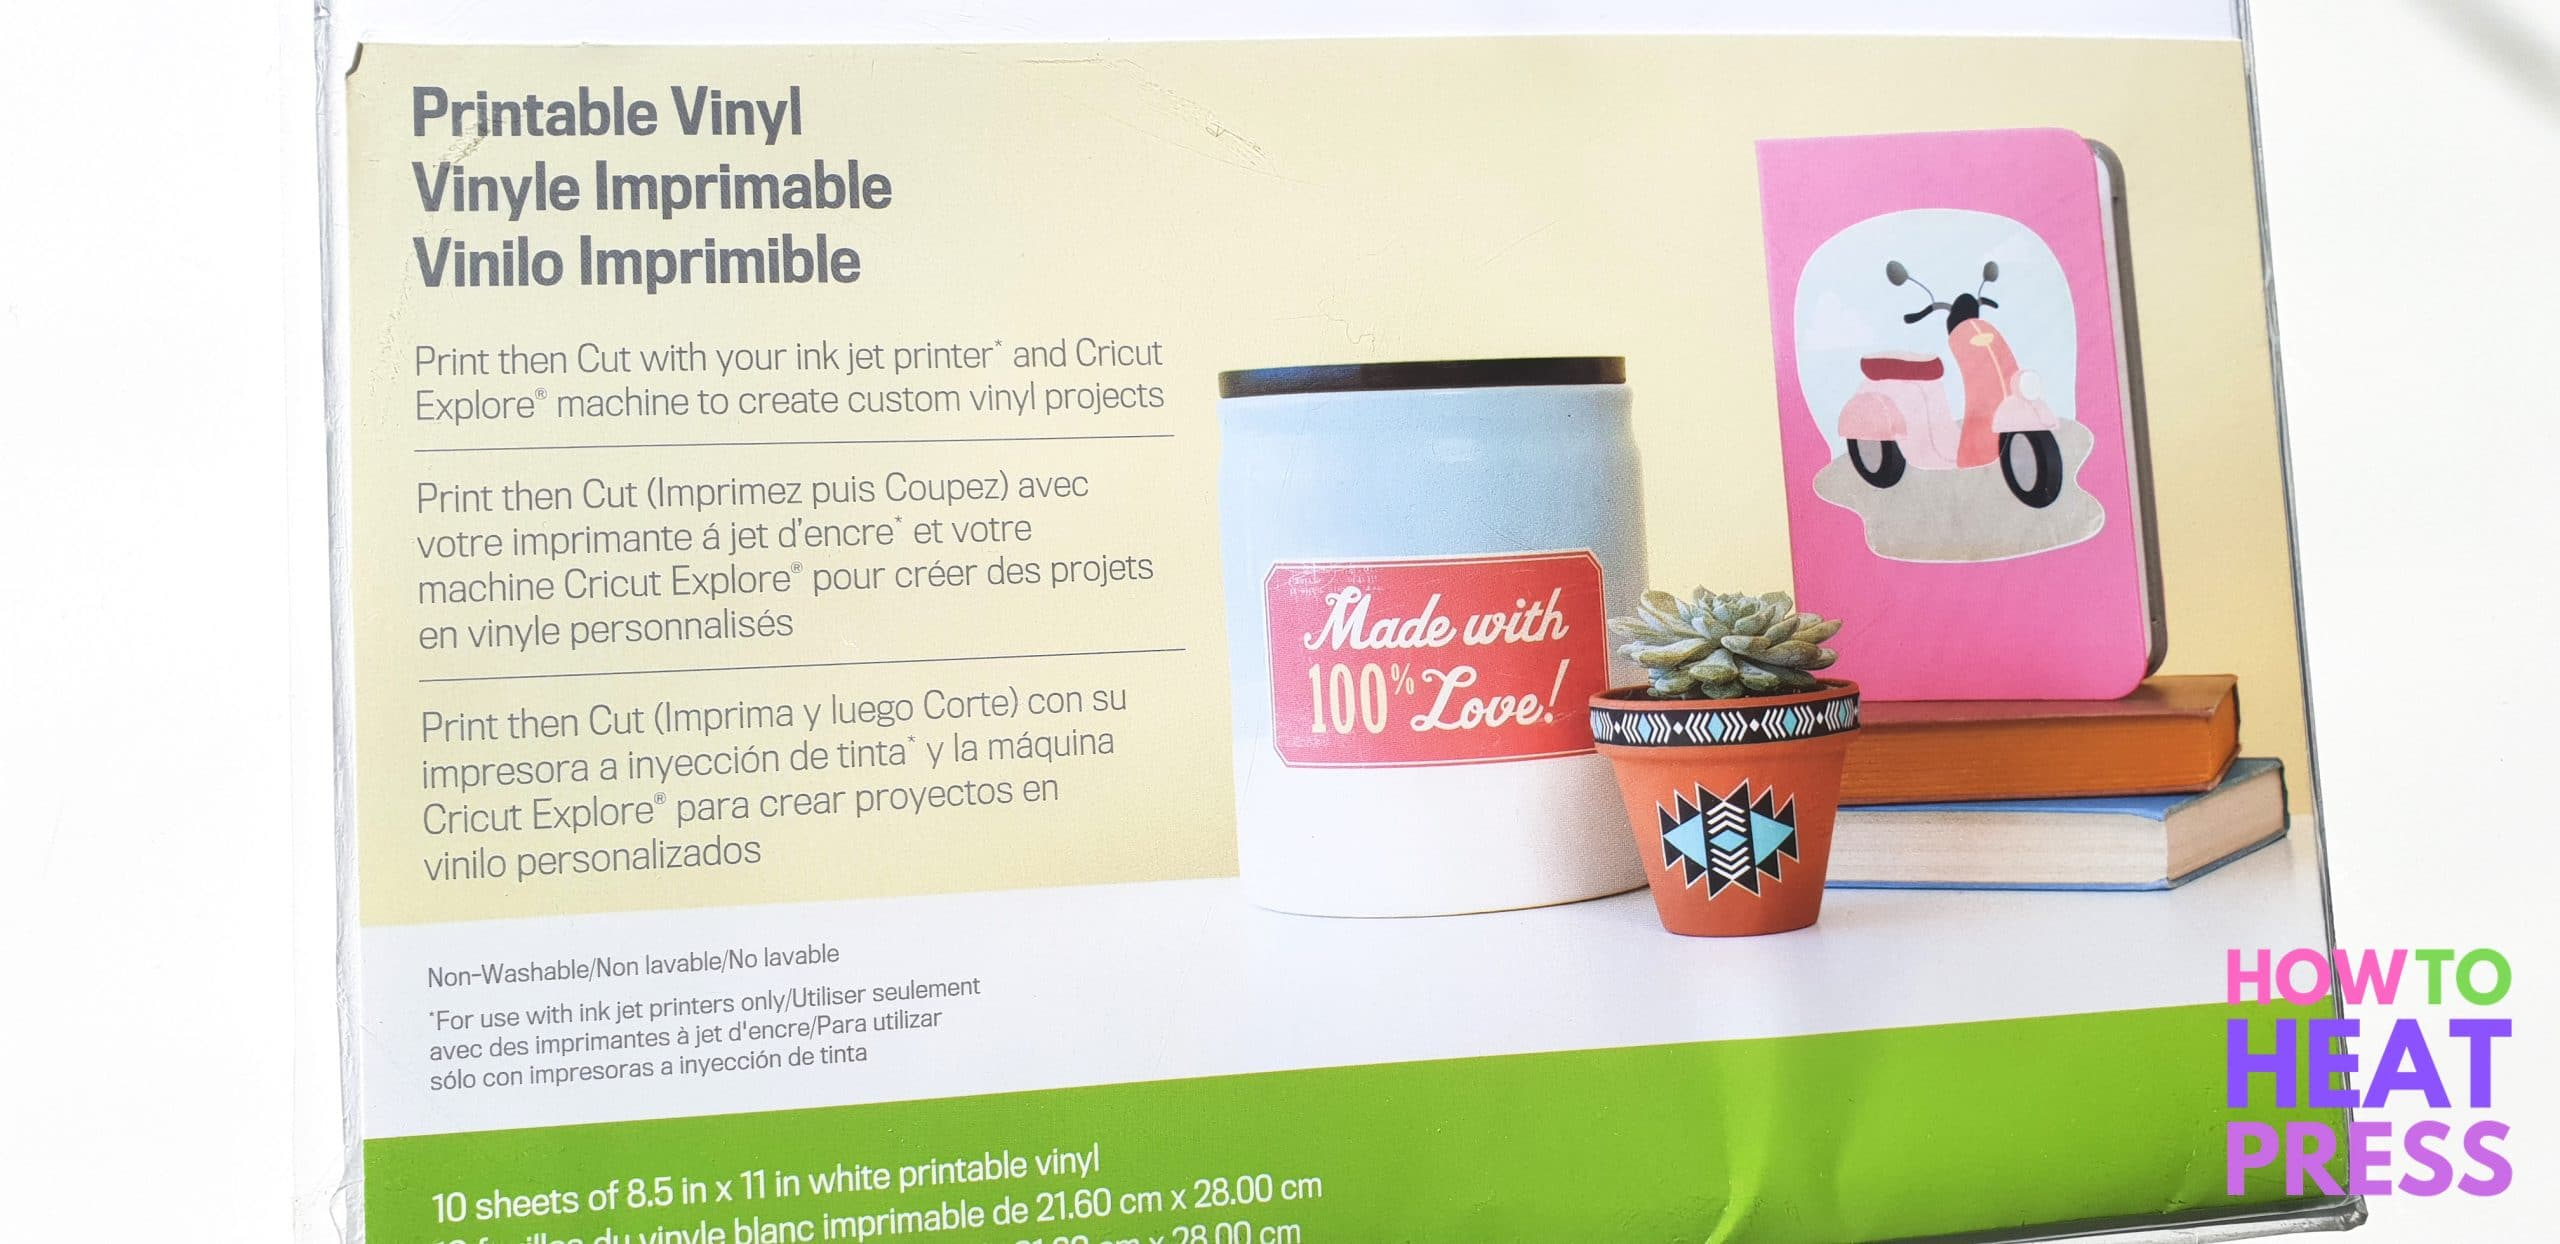 photo about How to Use Printable Vinyl named Cricut Printable Sticker Paper Ecosystem - Upon Log Wall